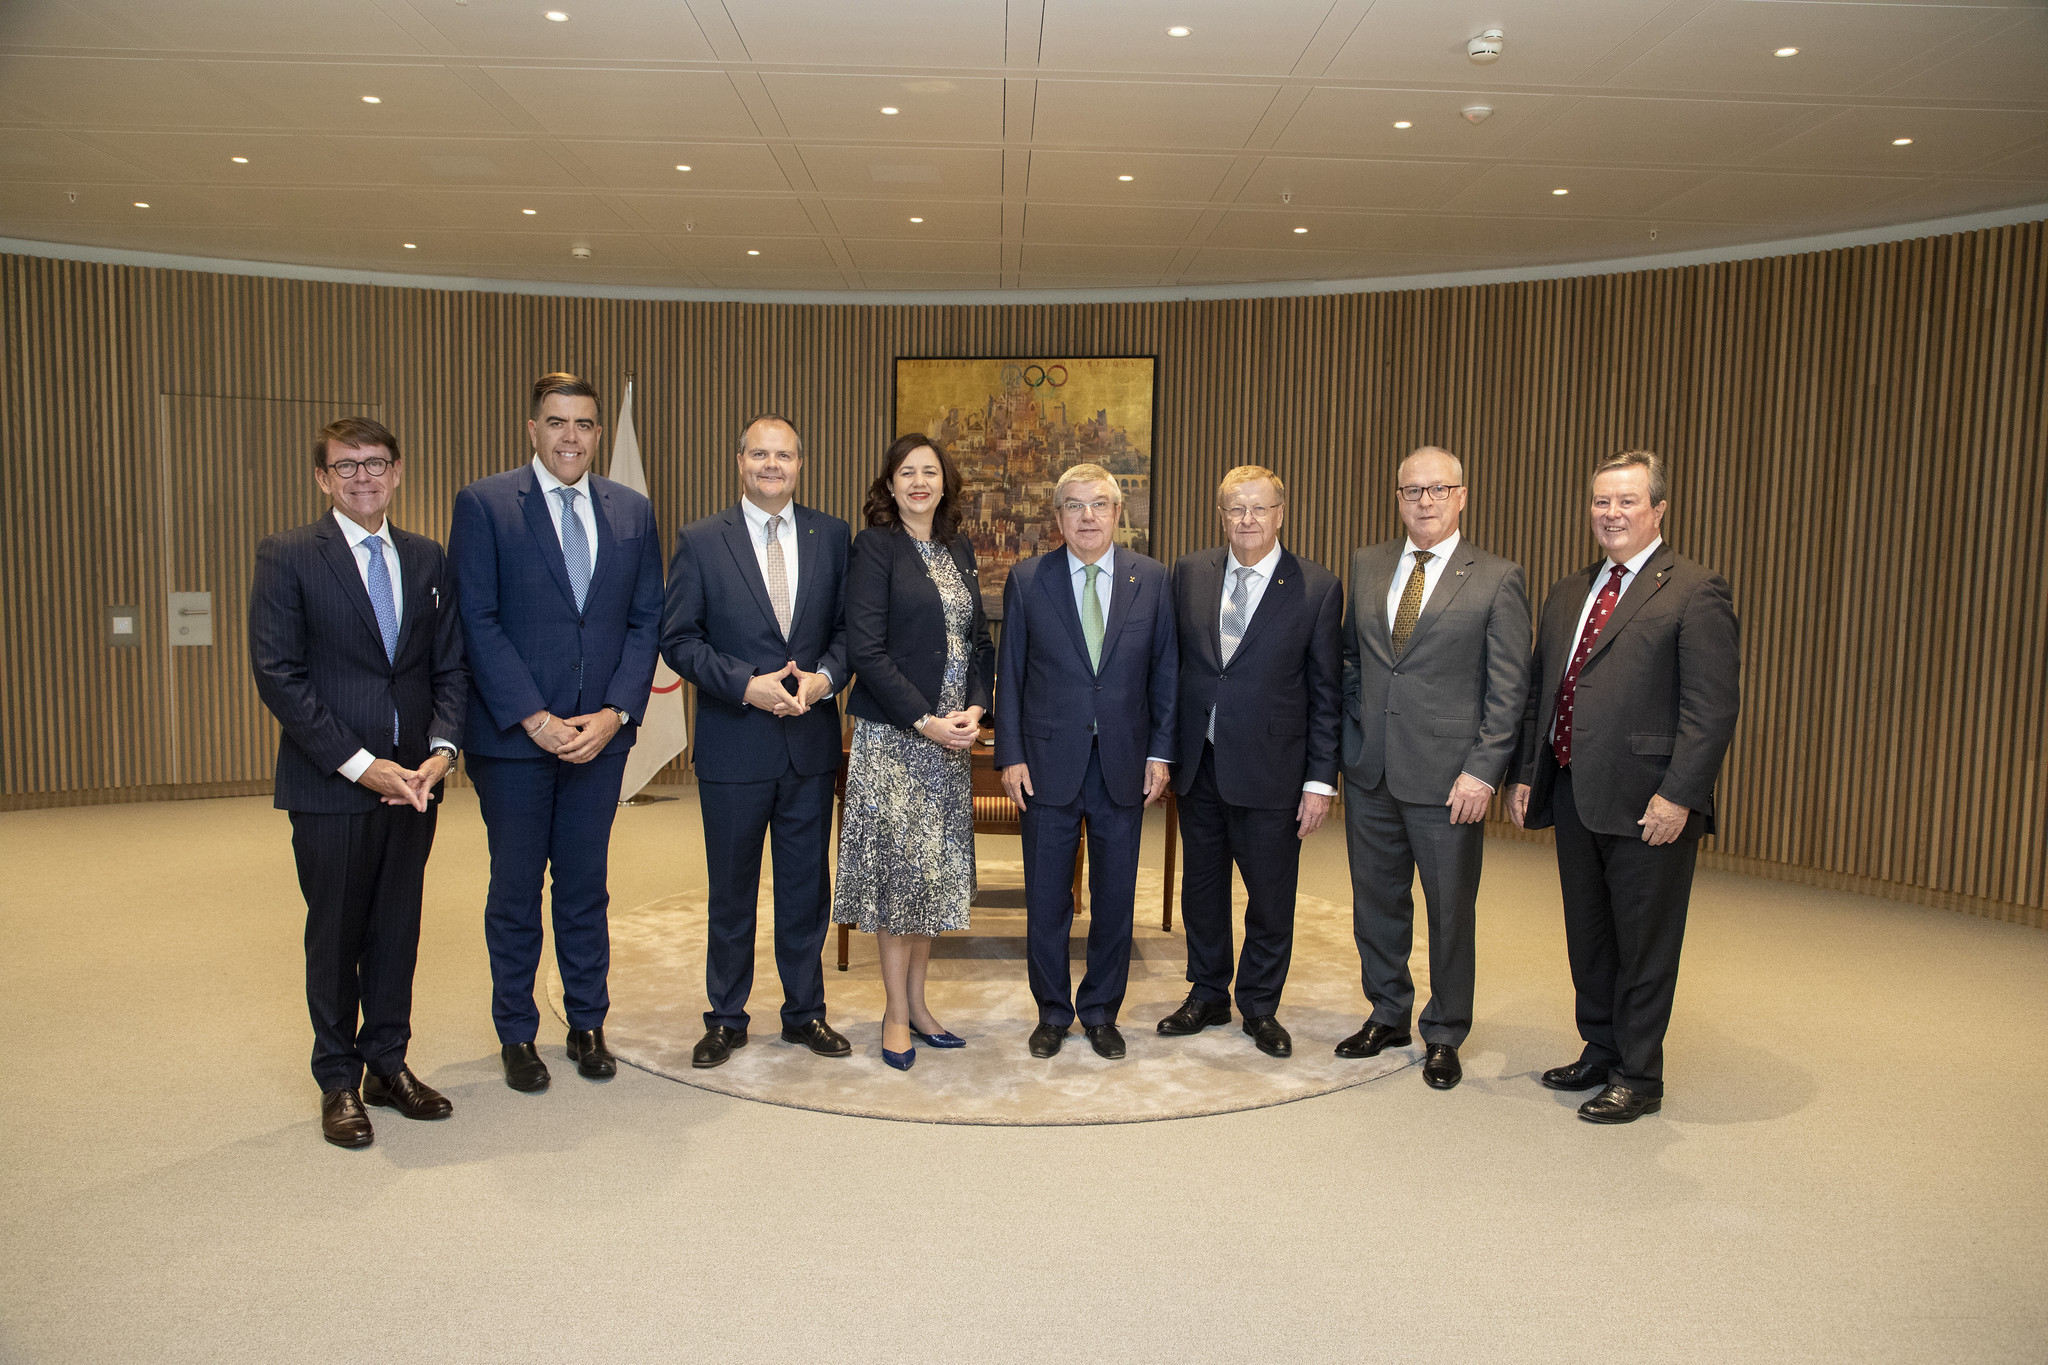 A delegation from Australia visited the IOC for talks about a possible 2032 bid this week ©IOC